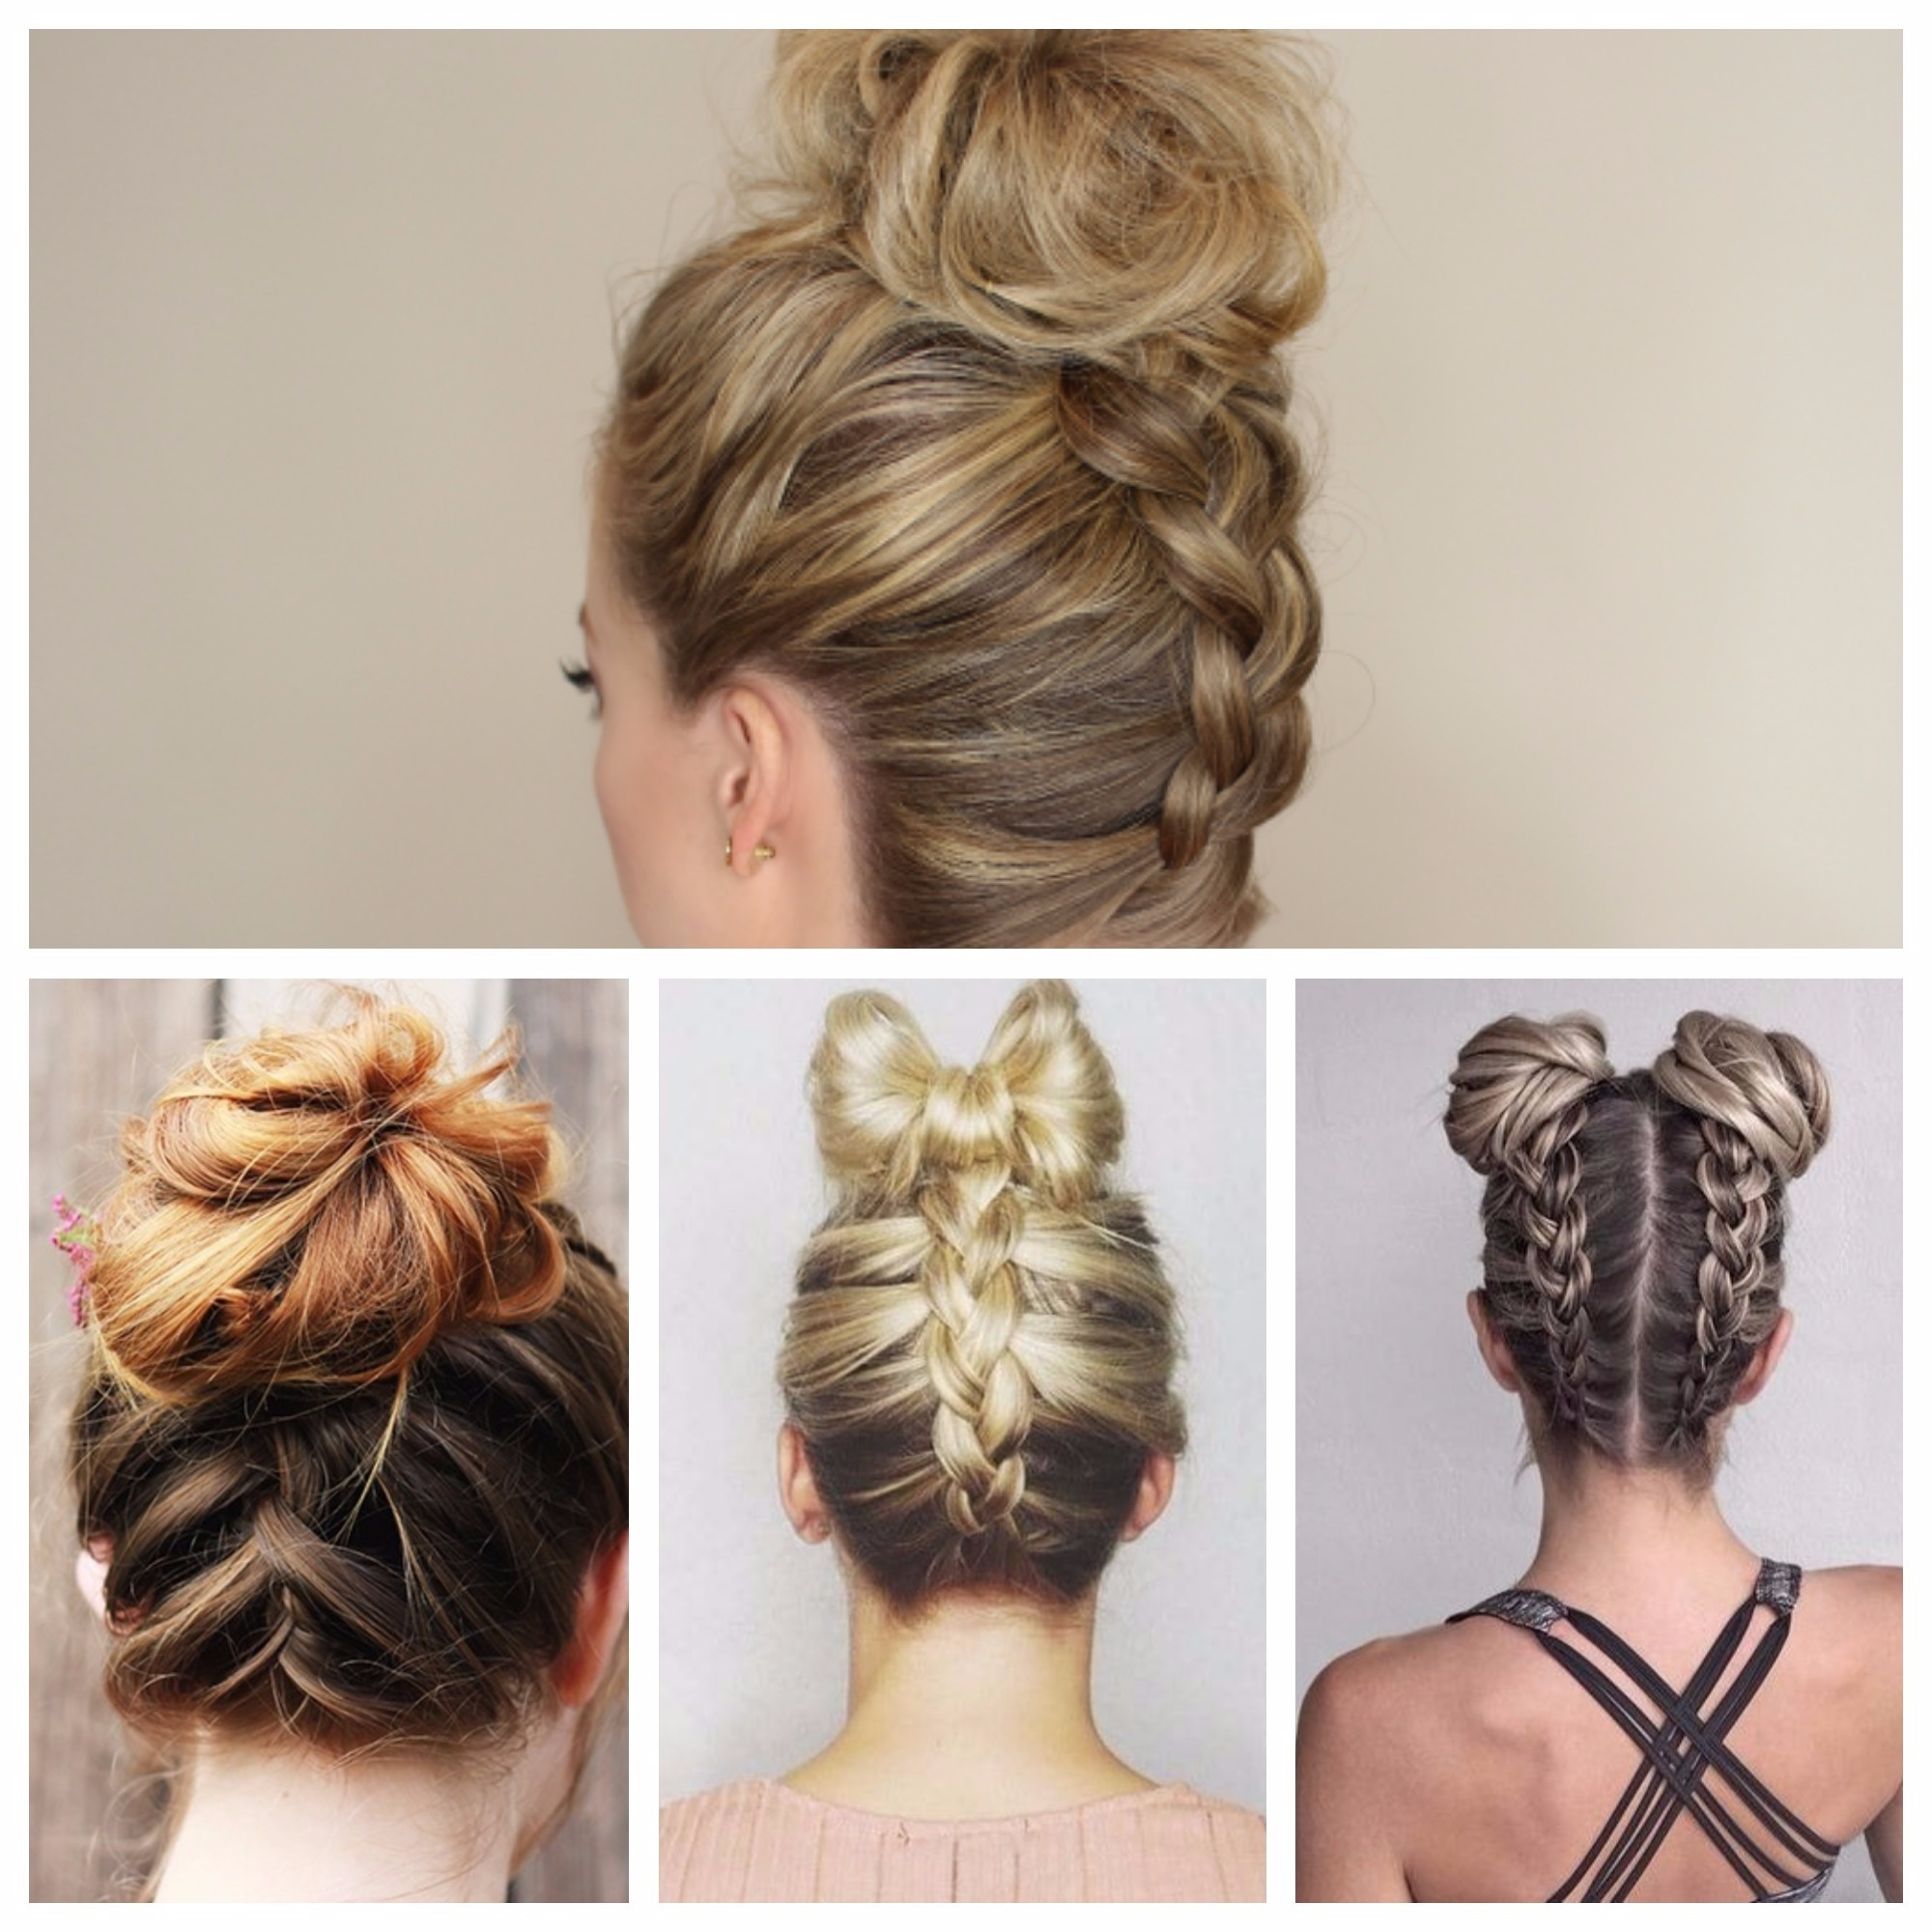 Recent Upside Down French Braids Into A Bun With Upside Down French Braid Hairstyles For 2018 – New Hairstyles (View 11 of 15)